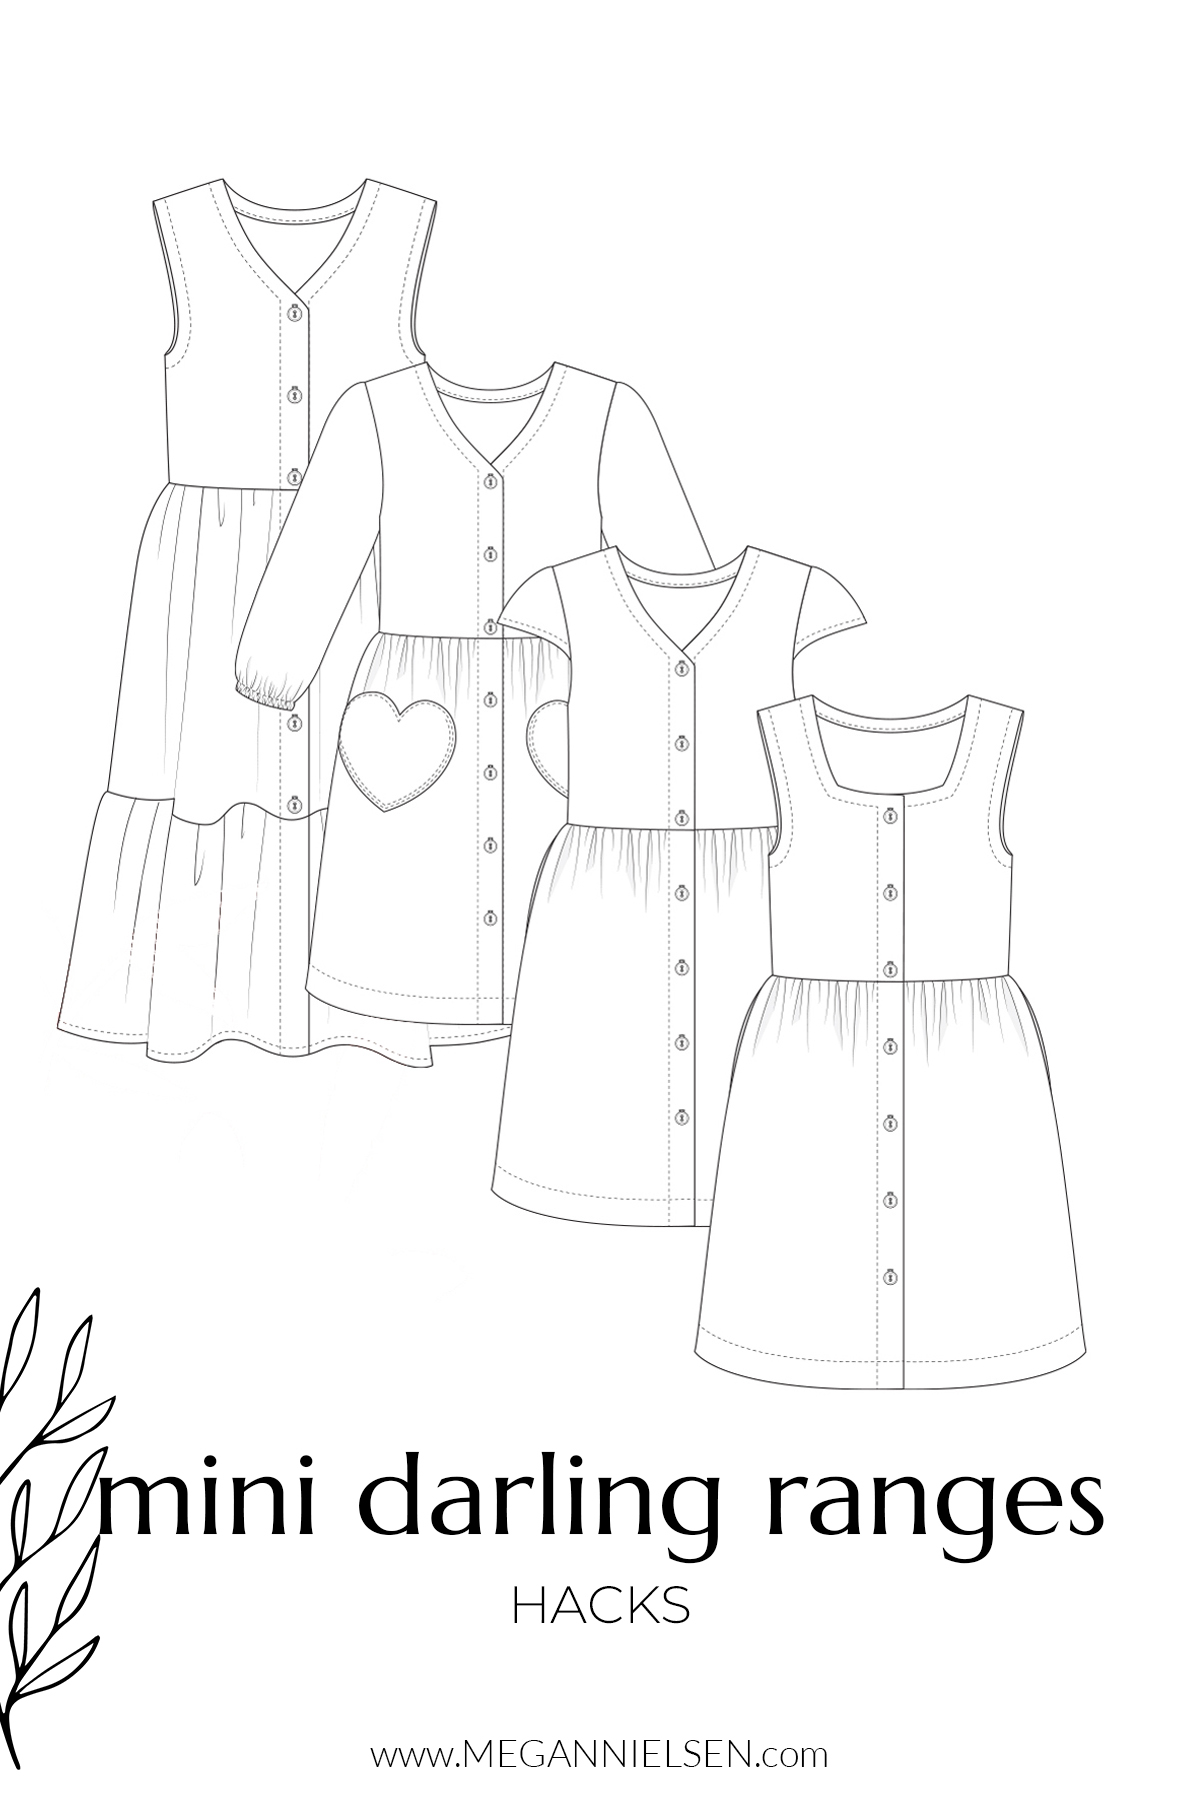 Mini Darling Ranges hacks tutorial